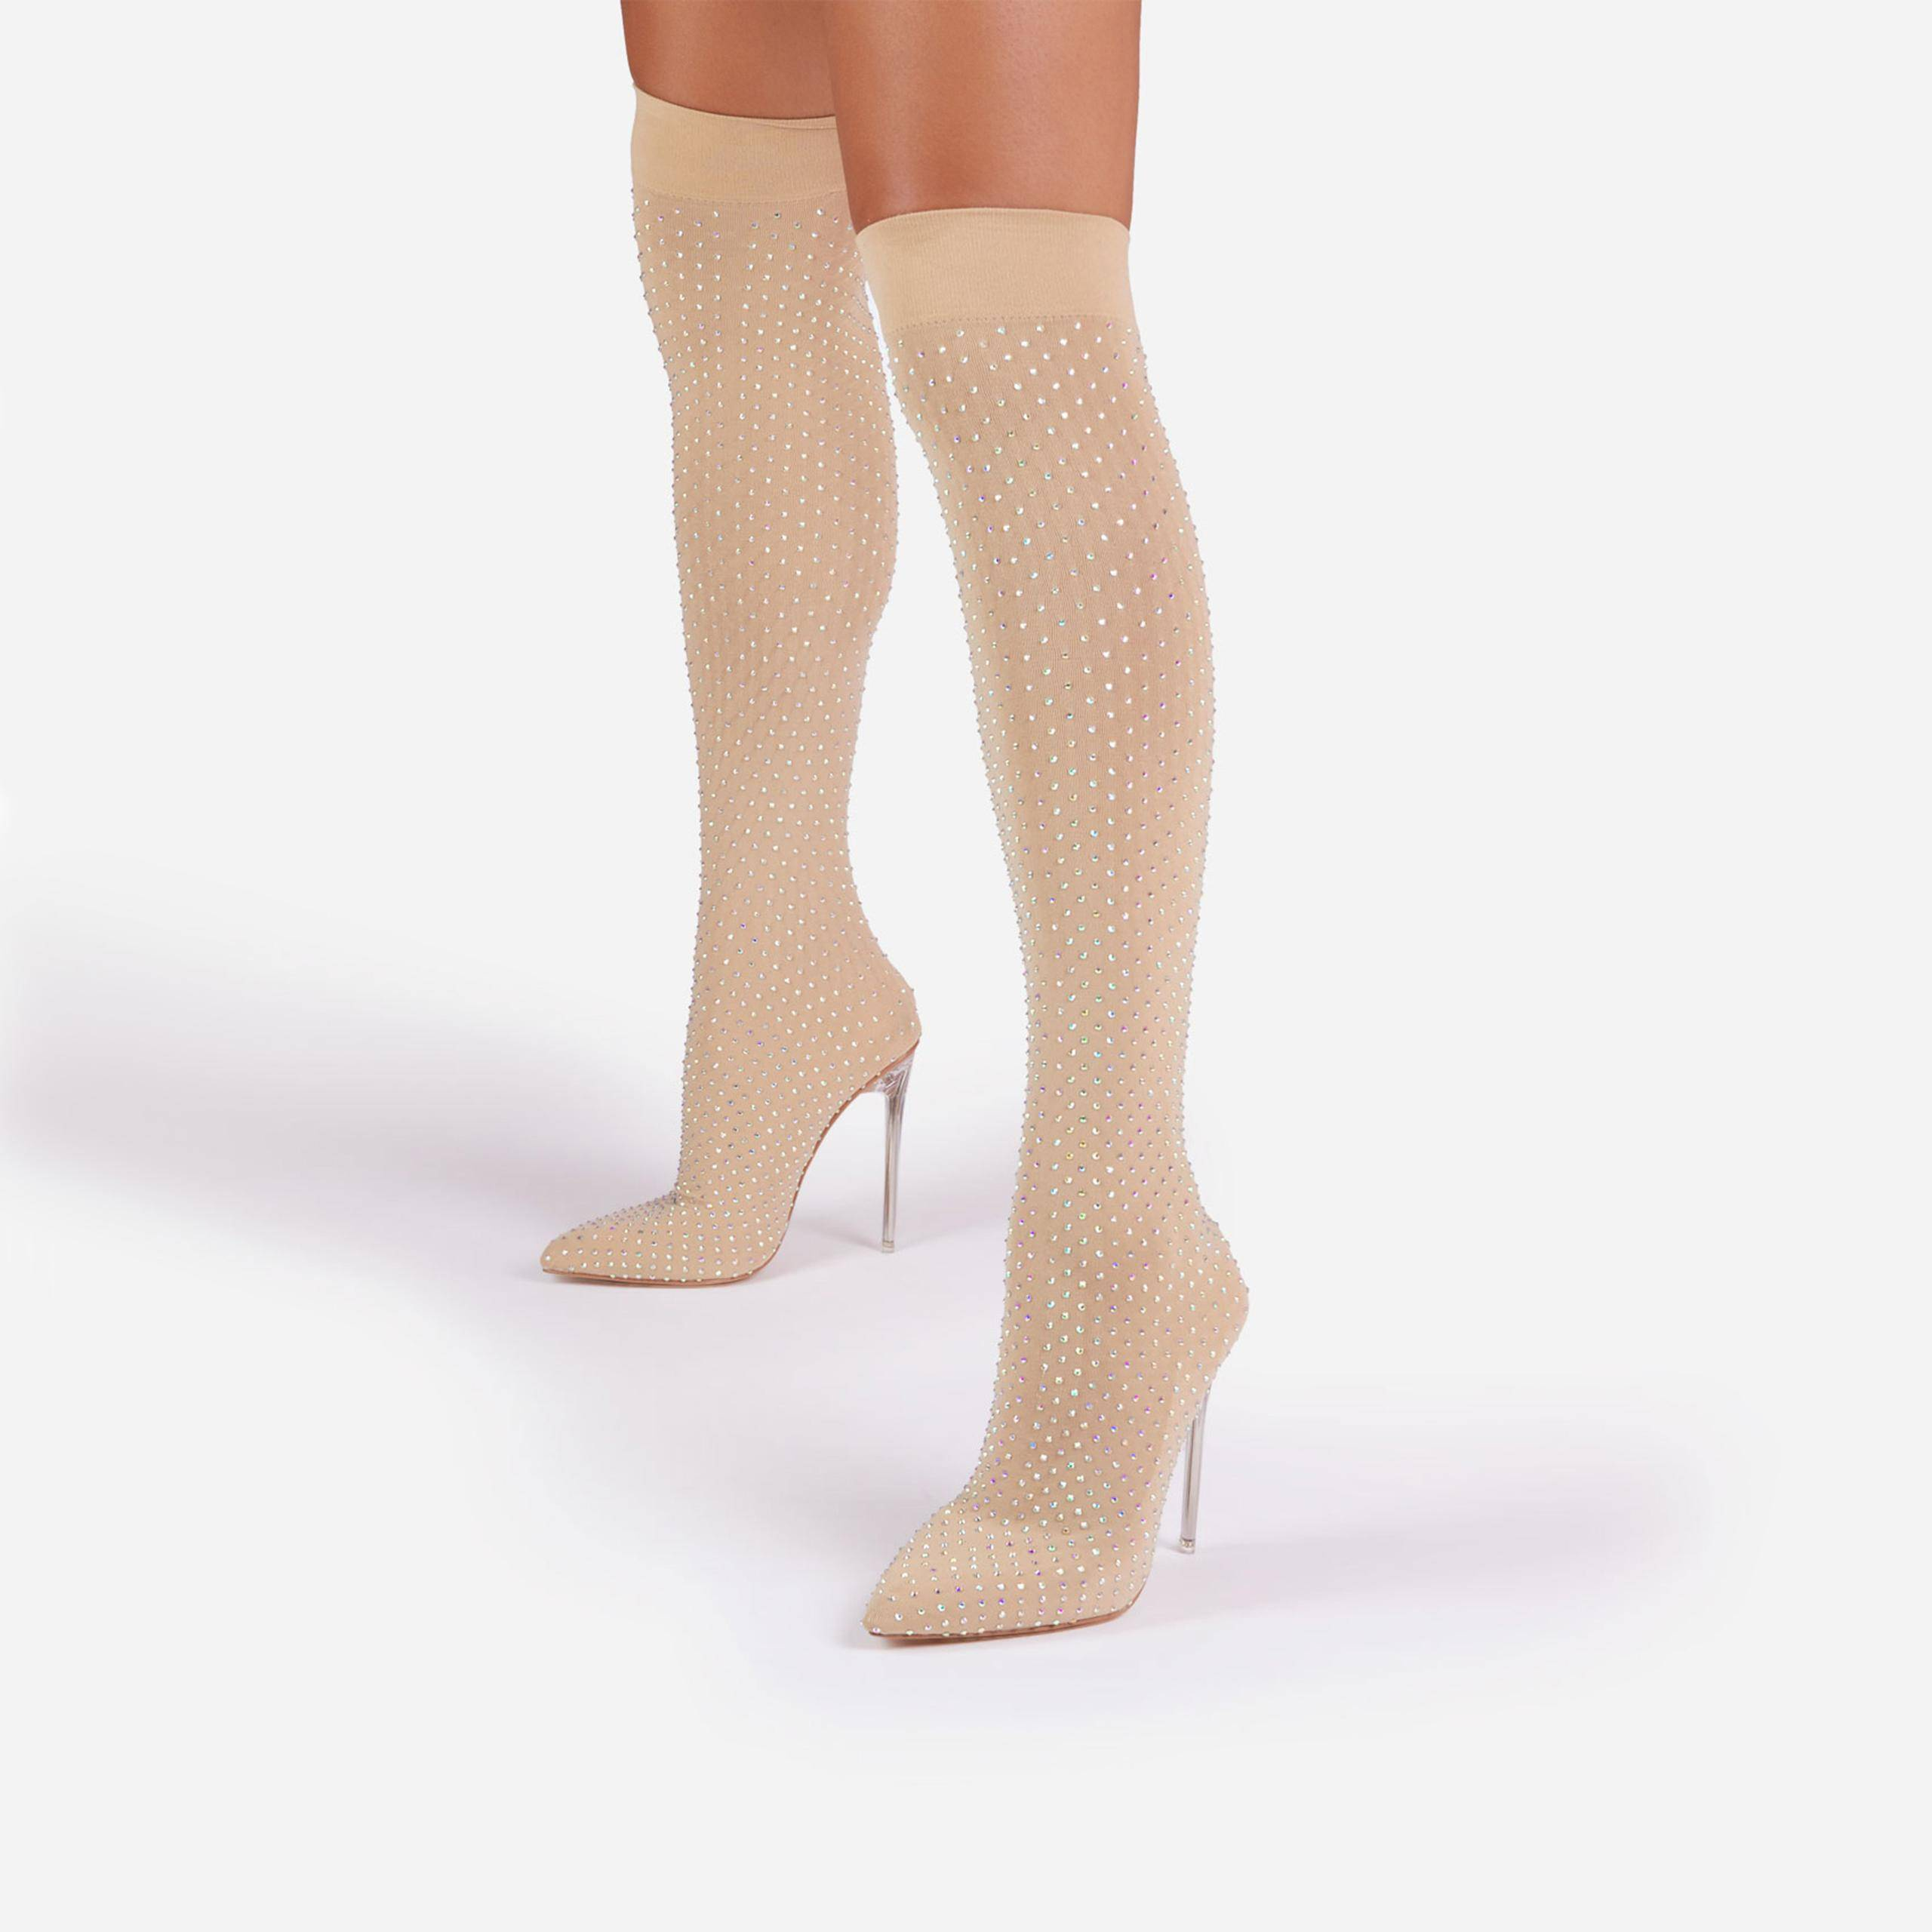 EGO Stallion Diamante Detail Clear Perspex Over The Knee Thigh High Long Sock Boot In Nude Fine Knit, Nude  - female - Size: 10